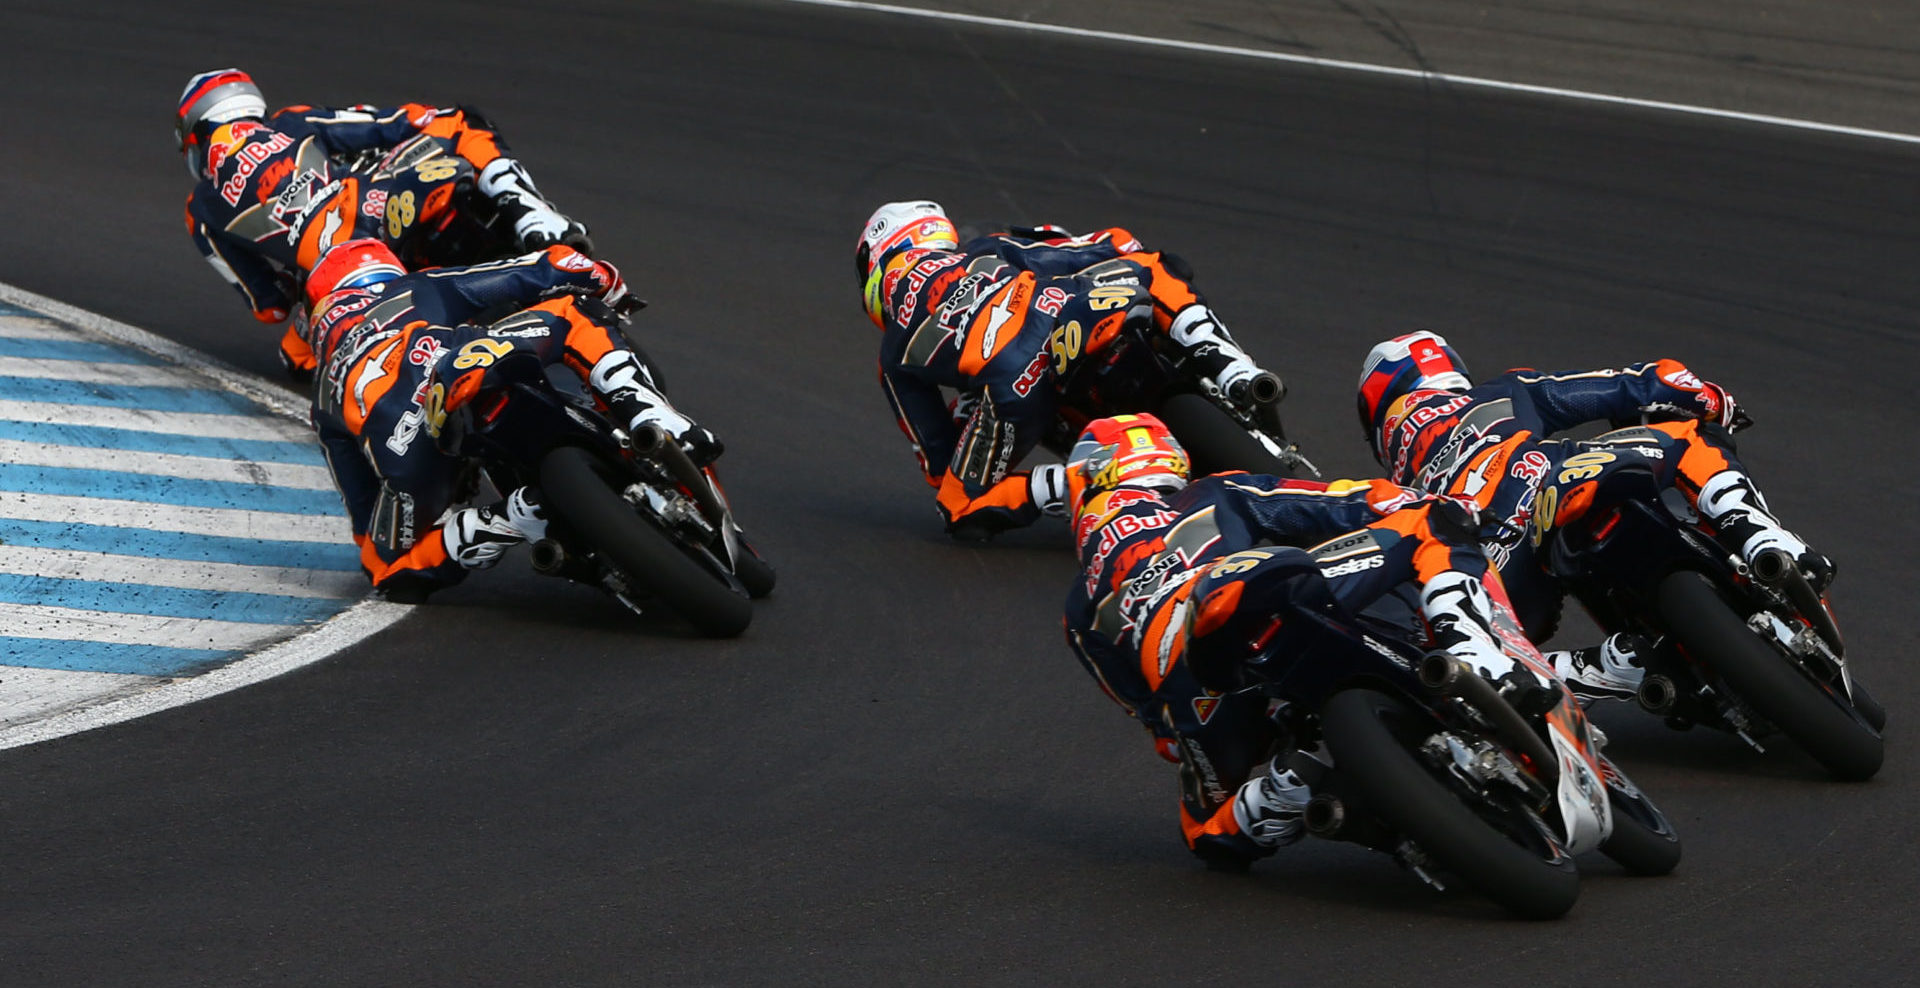 Red Bull MotoGP Rookies at speed. Photo courtesy of Red Bull.